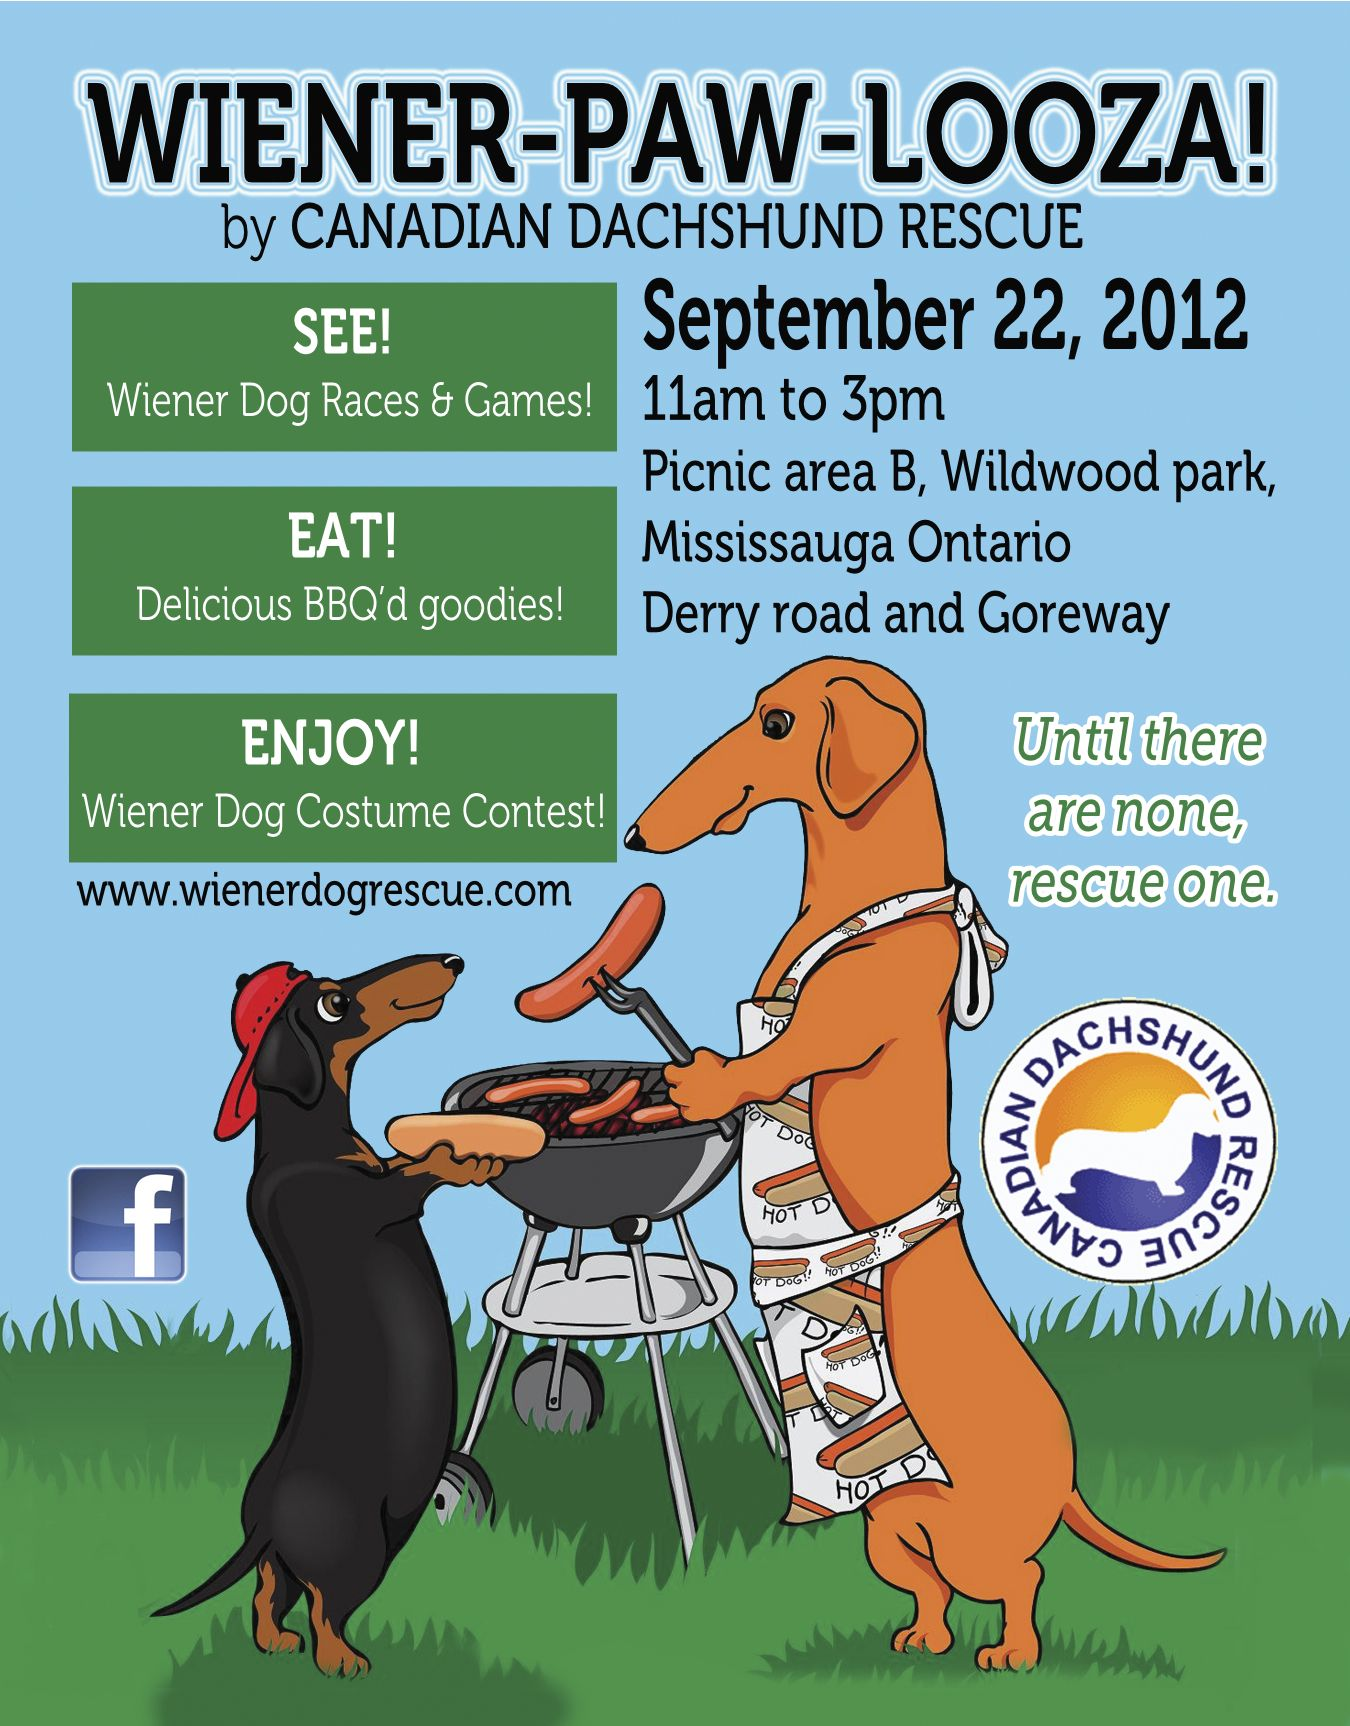 Pin By Canadian Dachshund Rescue On Wiener Paw Looza September 22